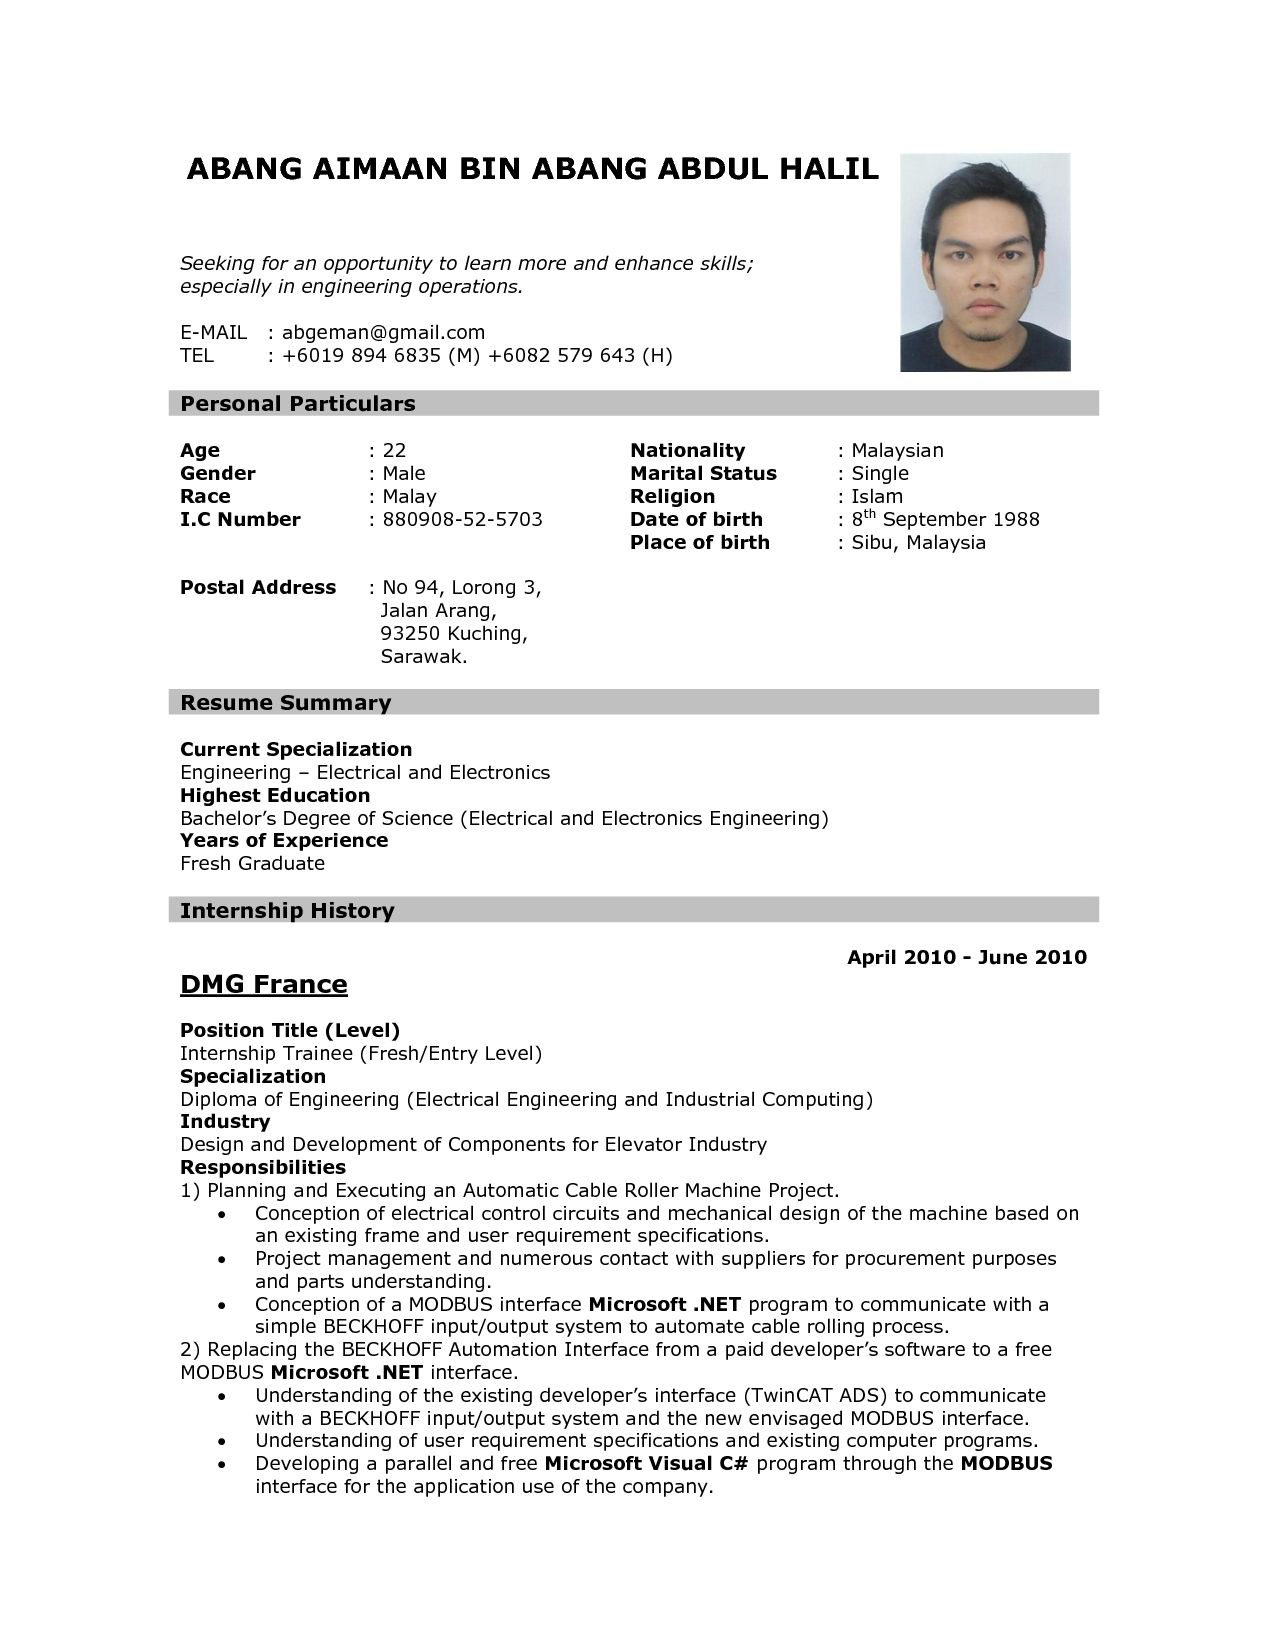 job application resume examples - Koran.ayodhya.co